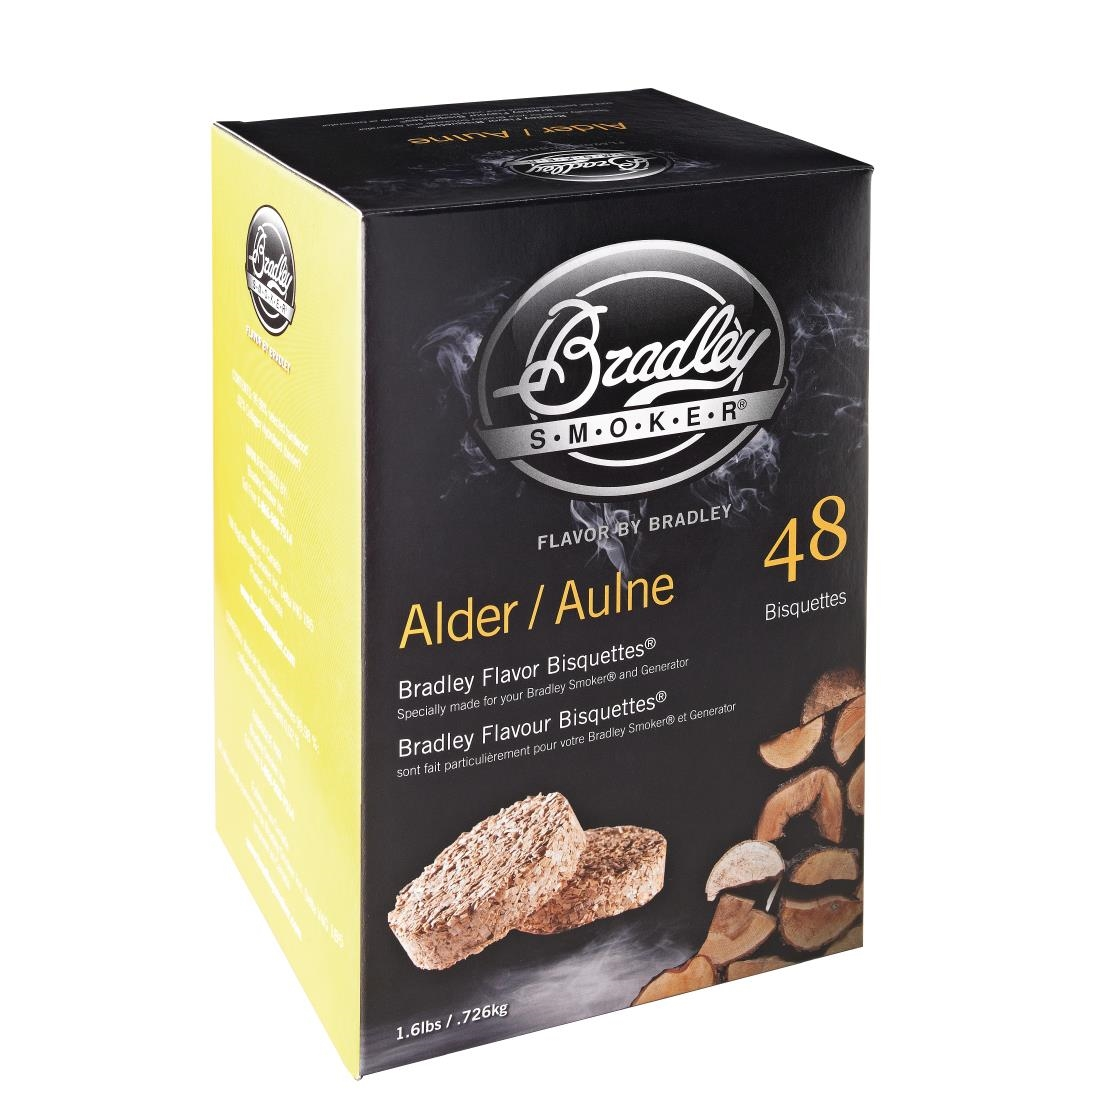 Image of Bradley Food Smoker Bisquettes BTAL48 (Pack of 48) Pack of 48